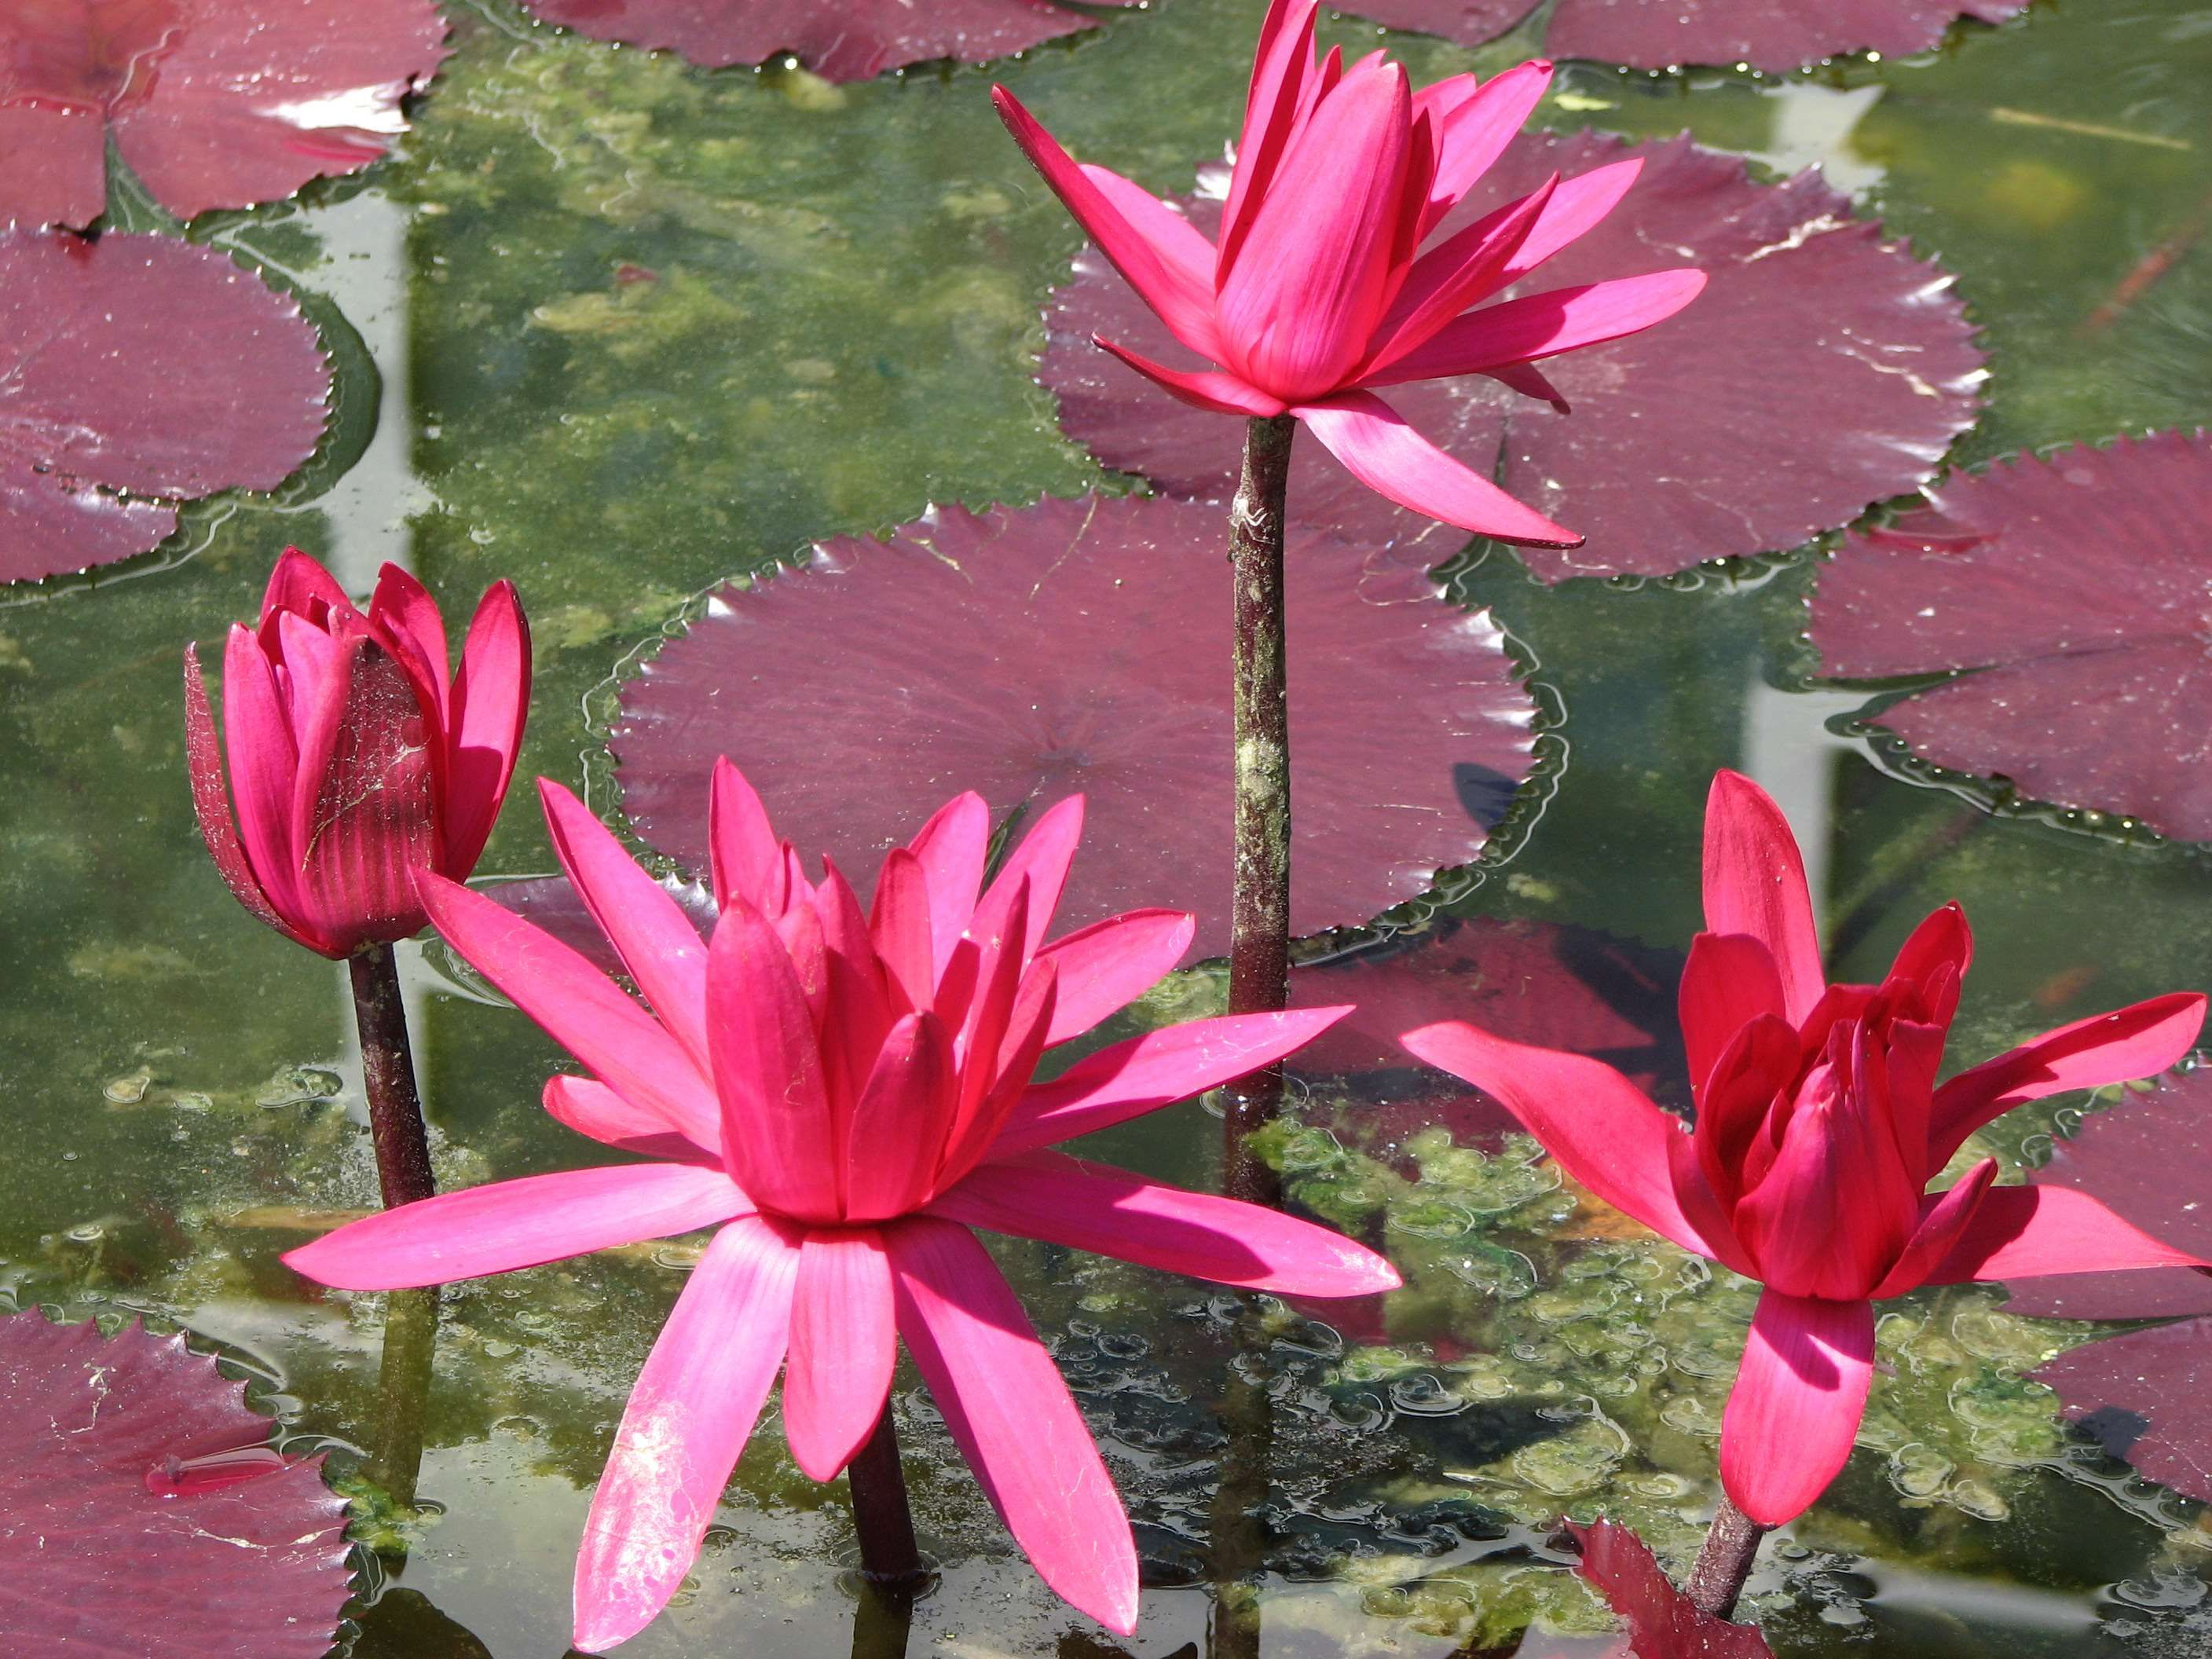 Blooming Flora Floral Flowers Lillies Lily Pads Pink Pink